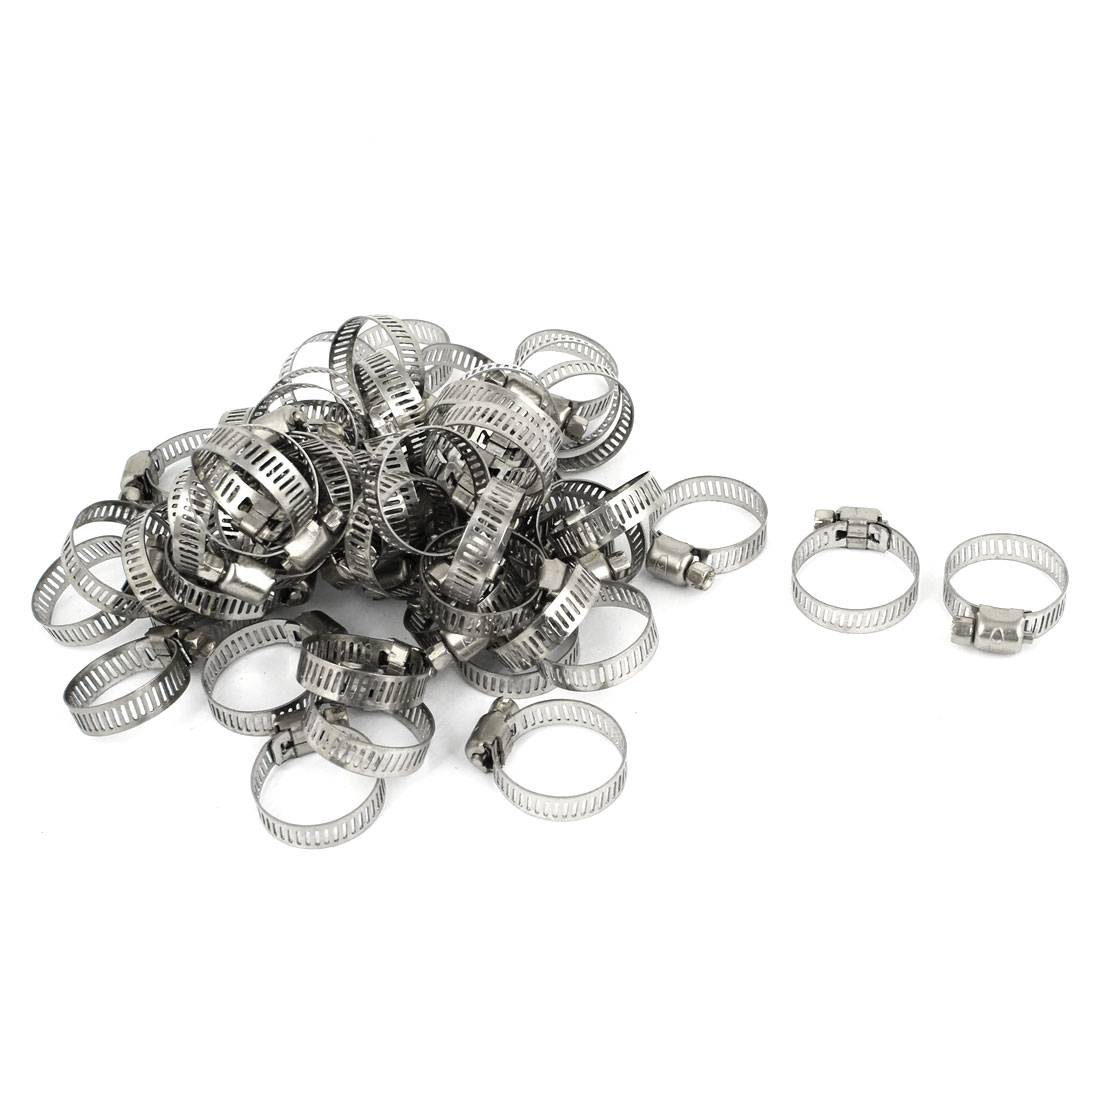 100 Pcs 16-25mm Stainless Steel Adjustable Cut Out Band Worm Drive Hose Clamps